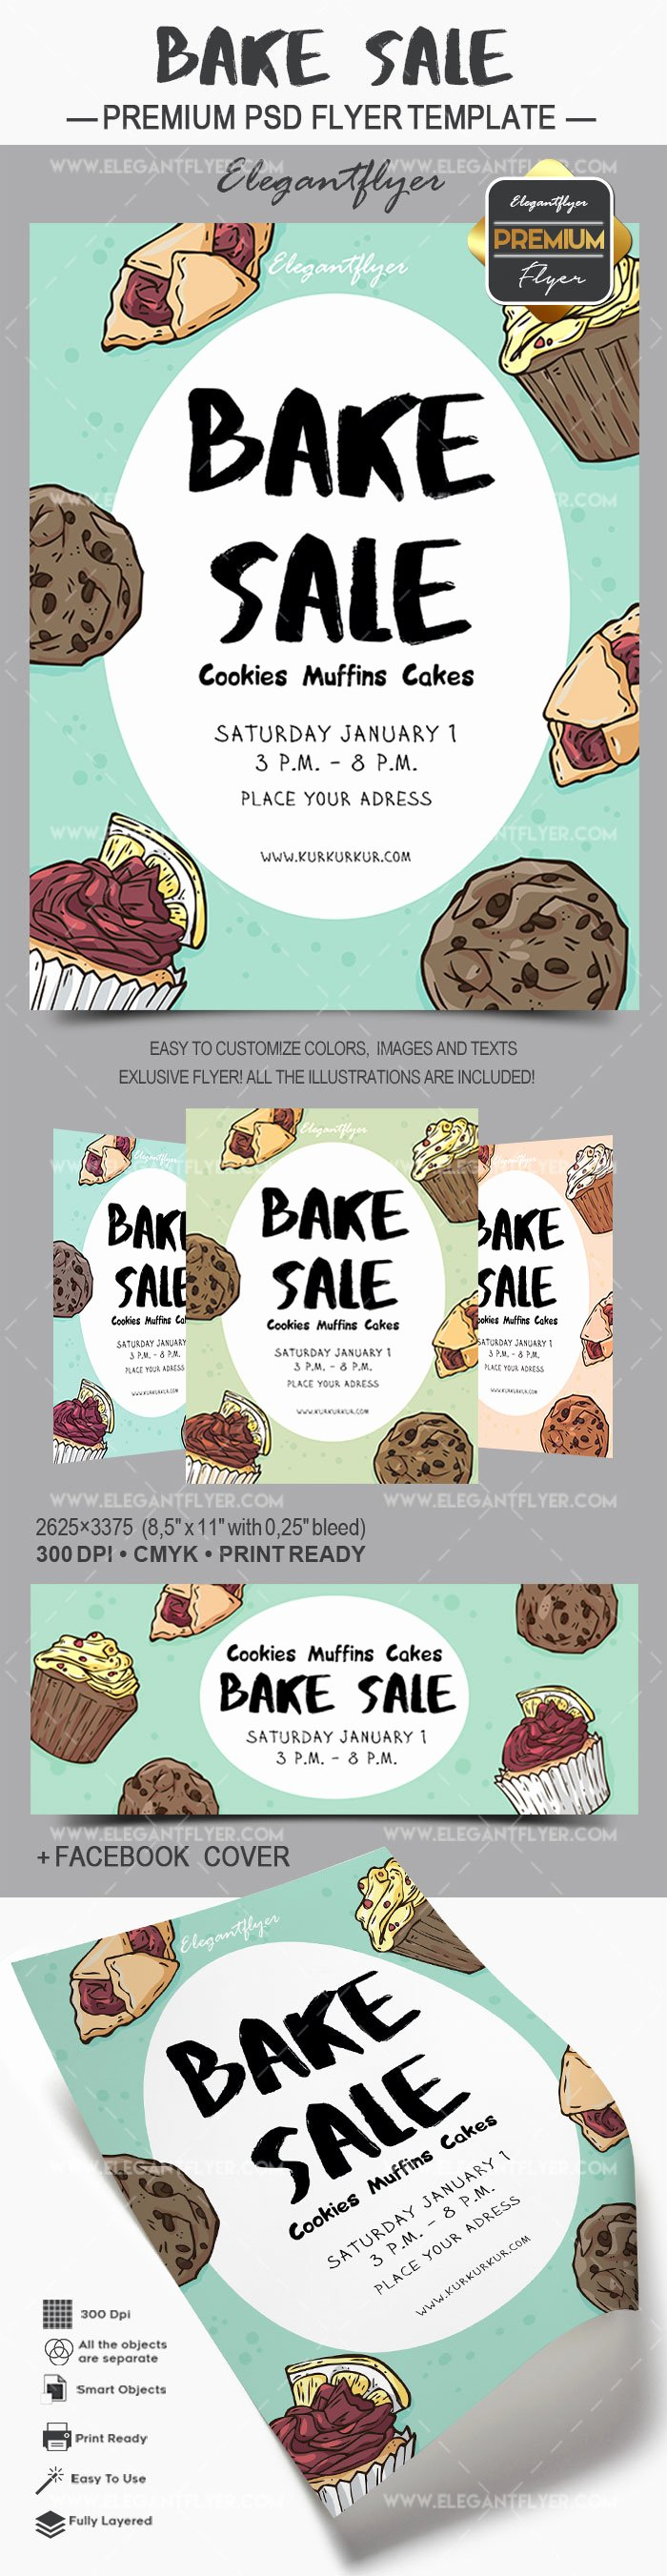 Bake Sale Flyer Templates Free Unique Flyer for Bake Sale Cookies Muffins Cakes – by Elegantflyer